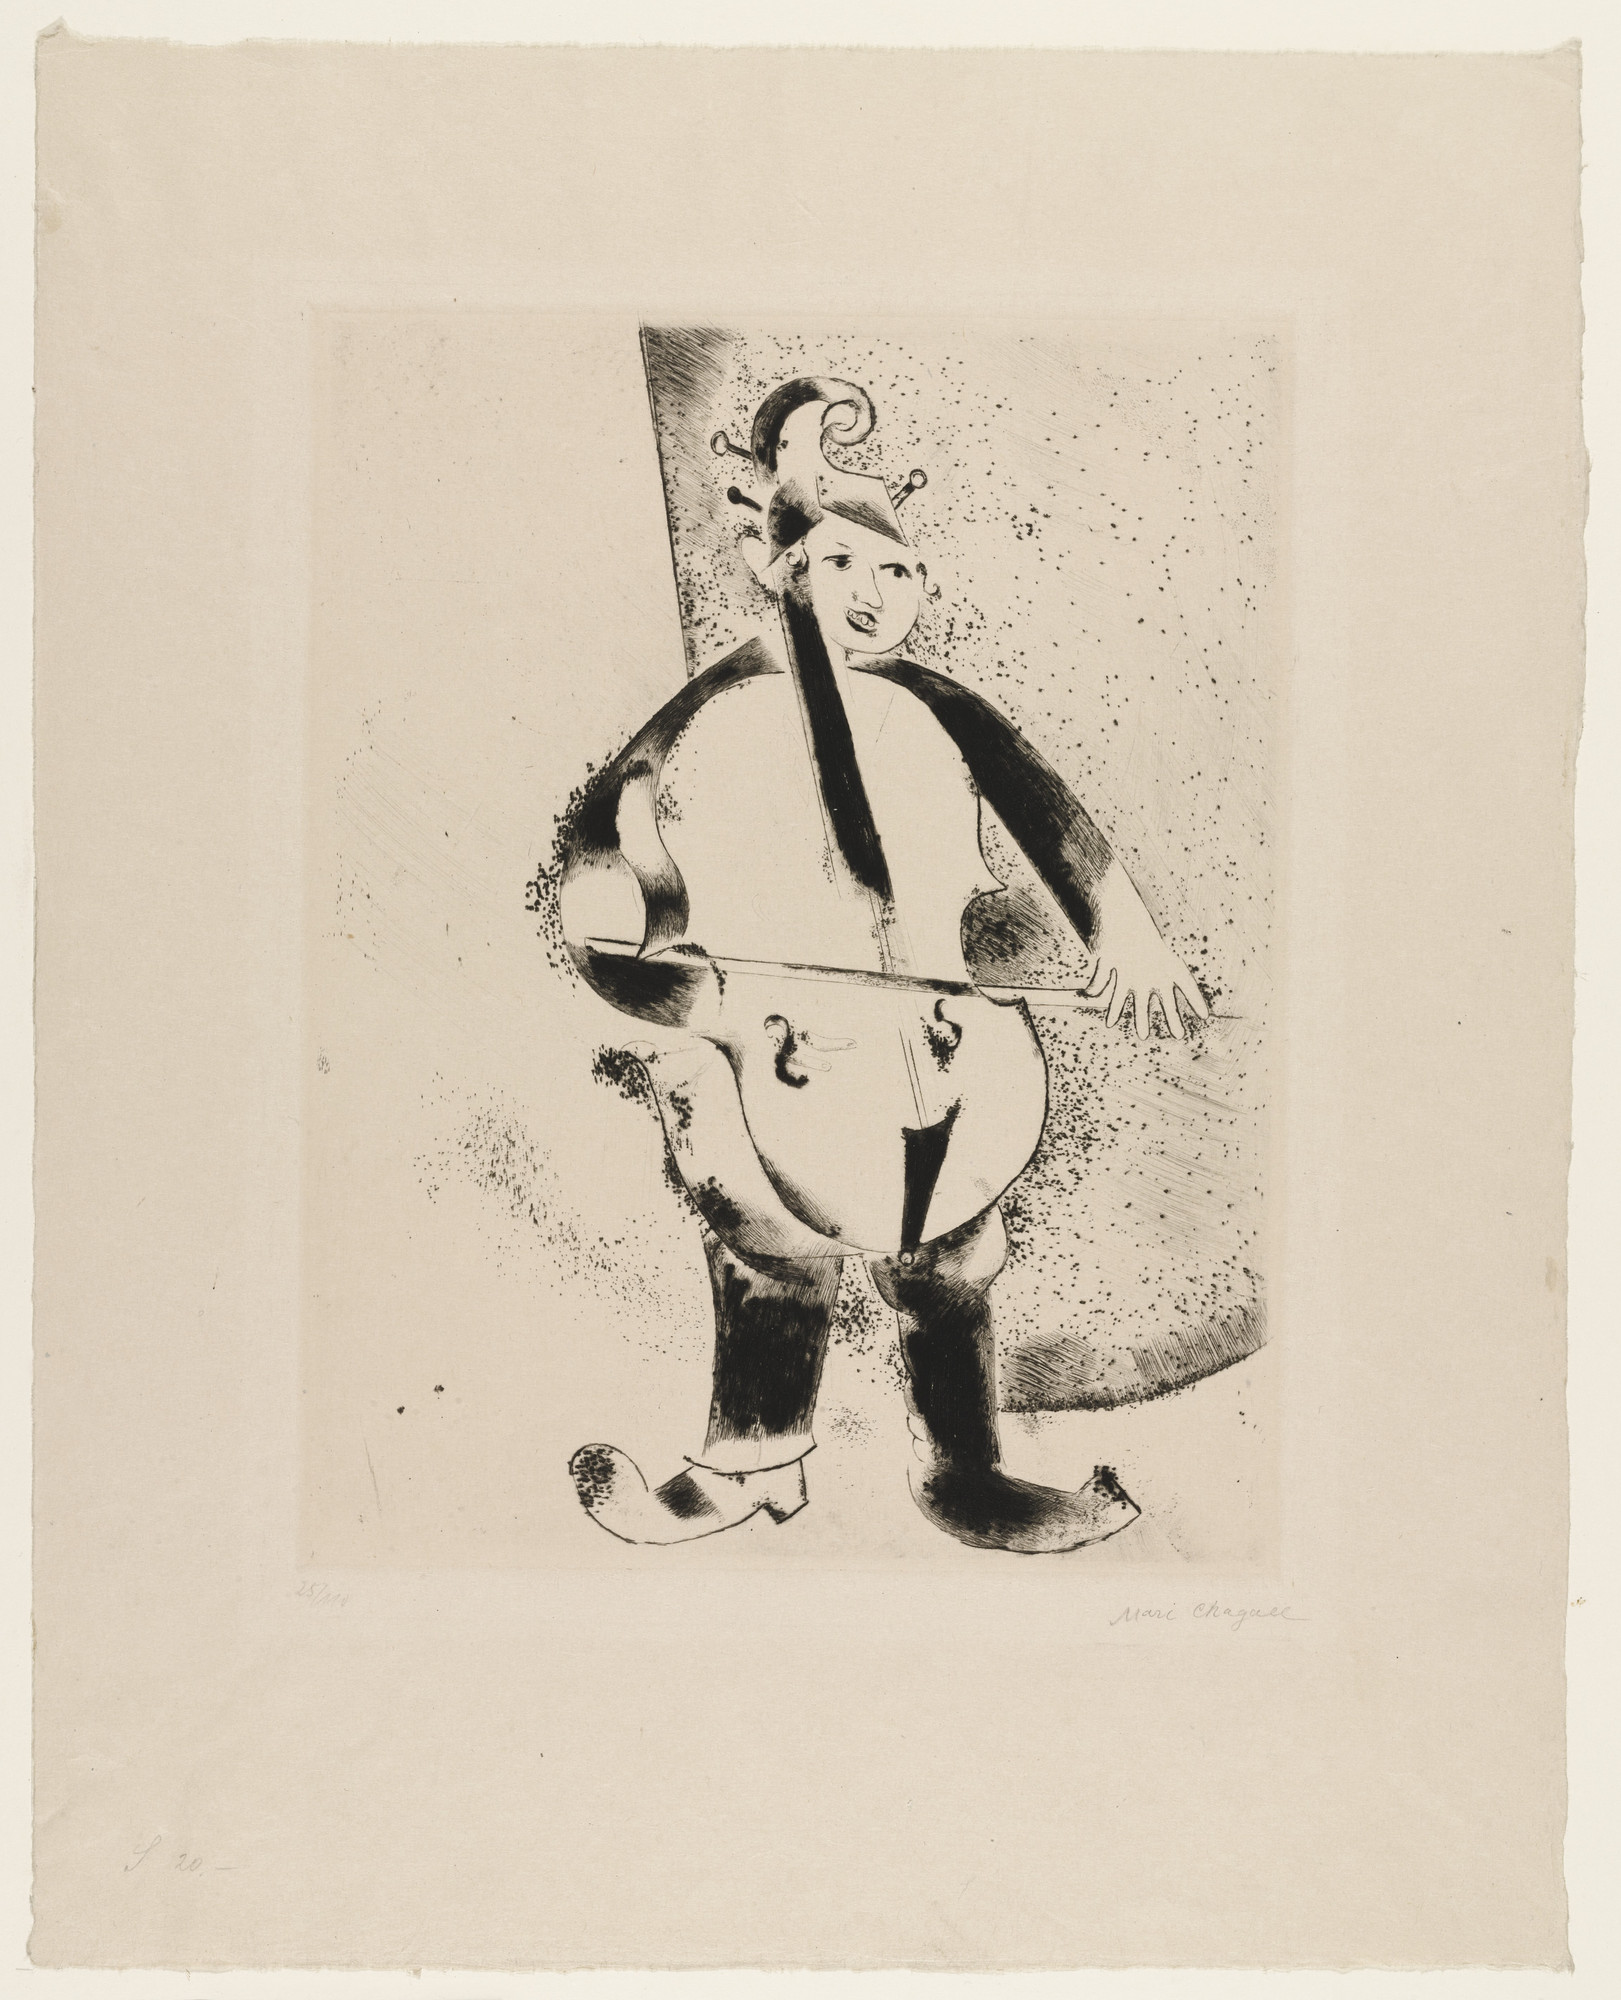 Marc Chagall. The Musician (Der Musiker), supplementary print from My Life (Mein Leben). (1922)